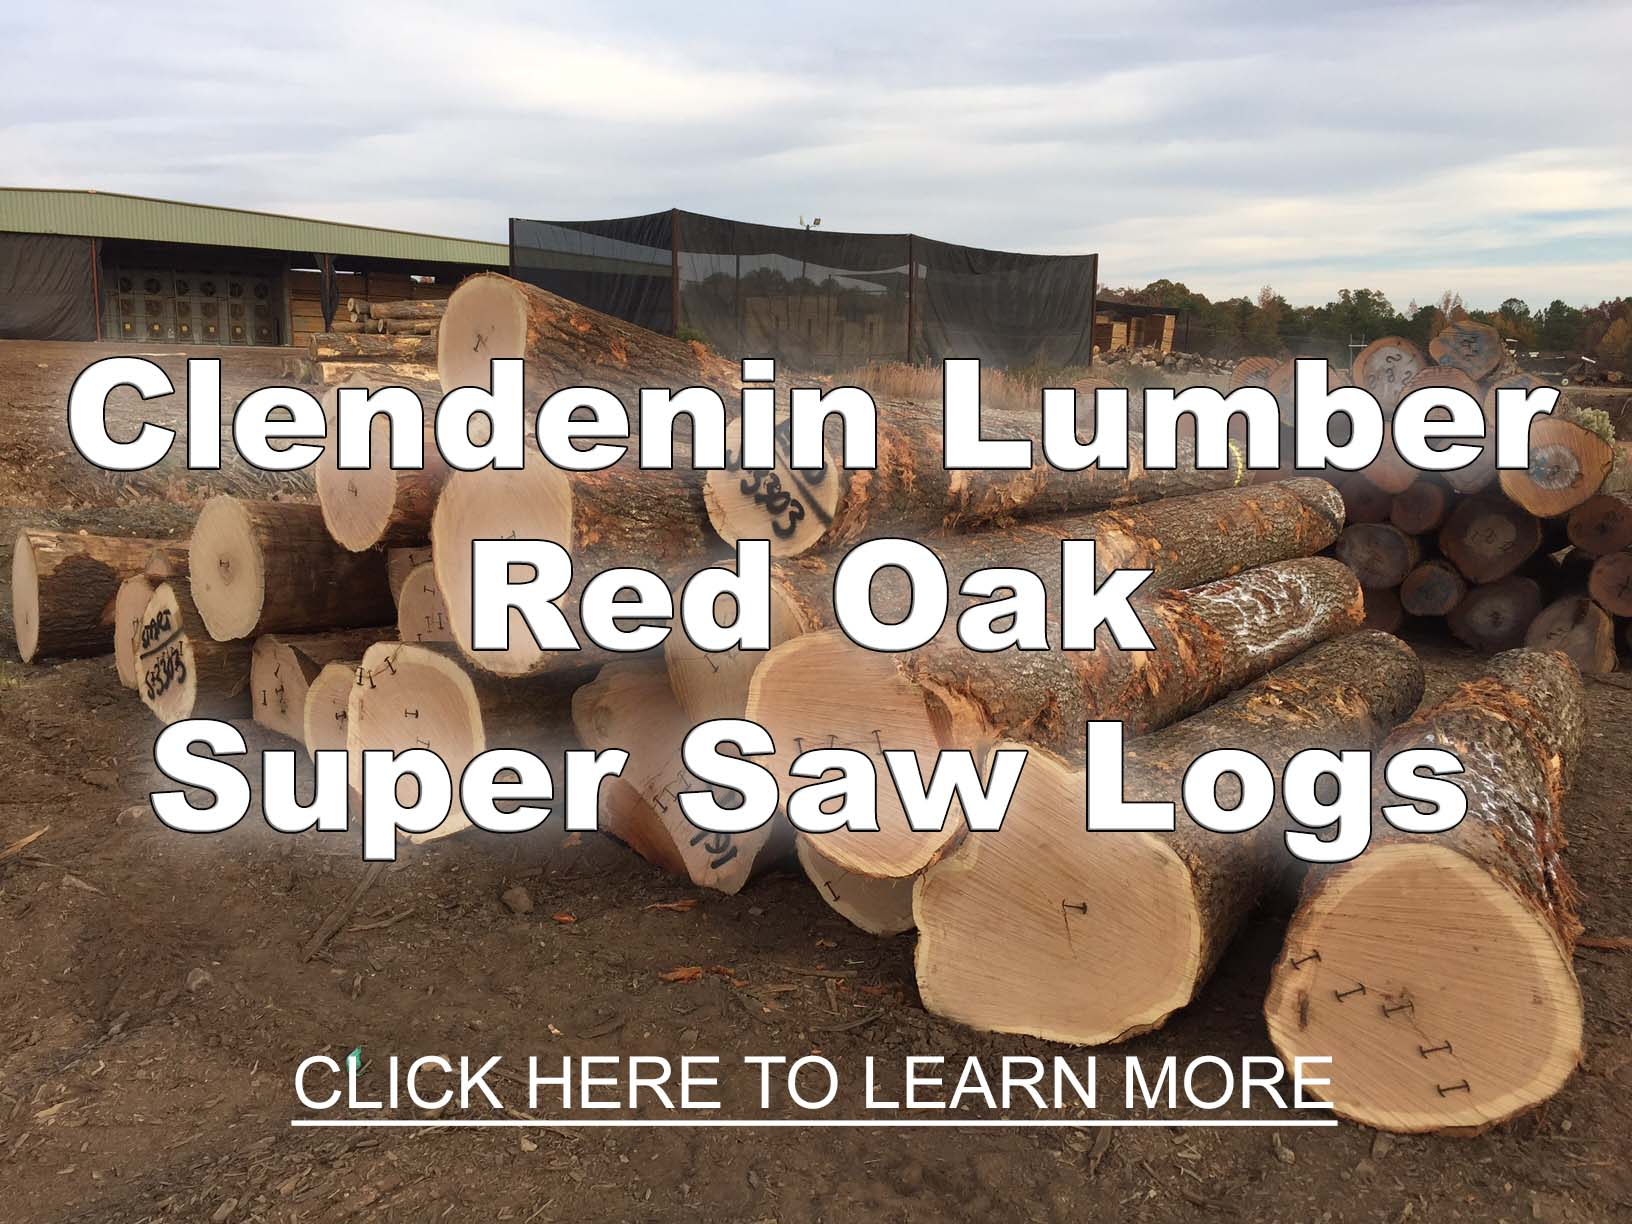 Red Oak Super Saw Log Clendenin